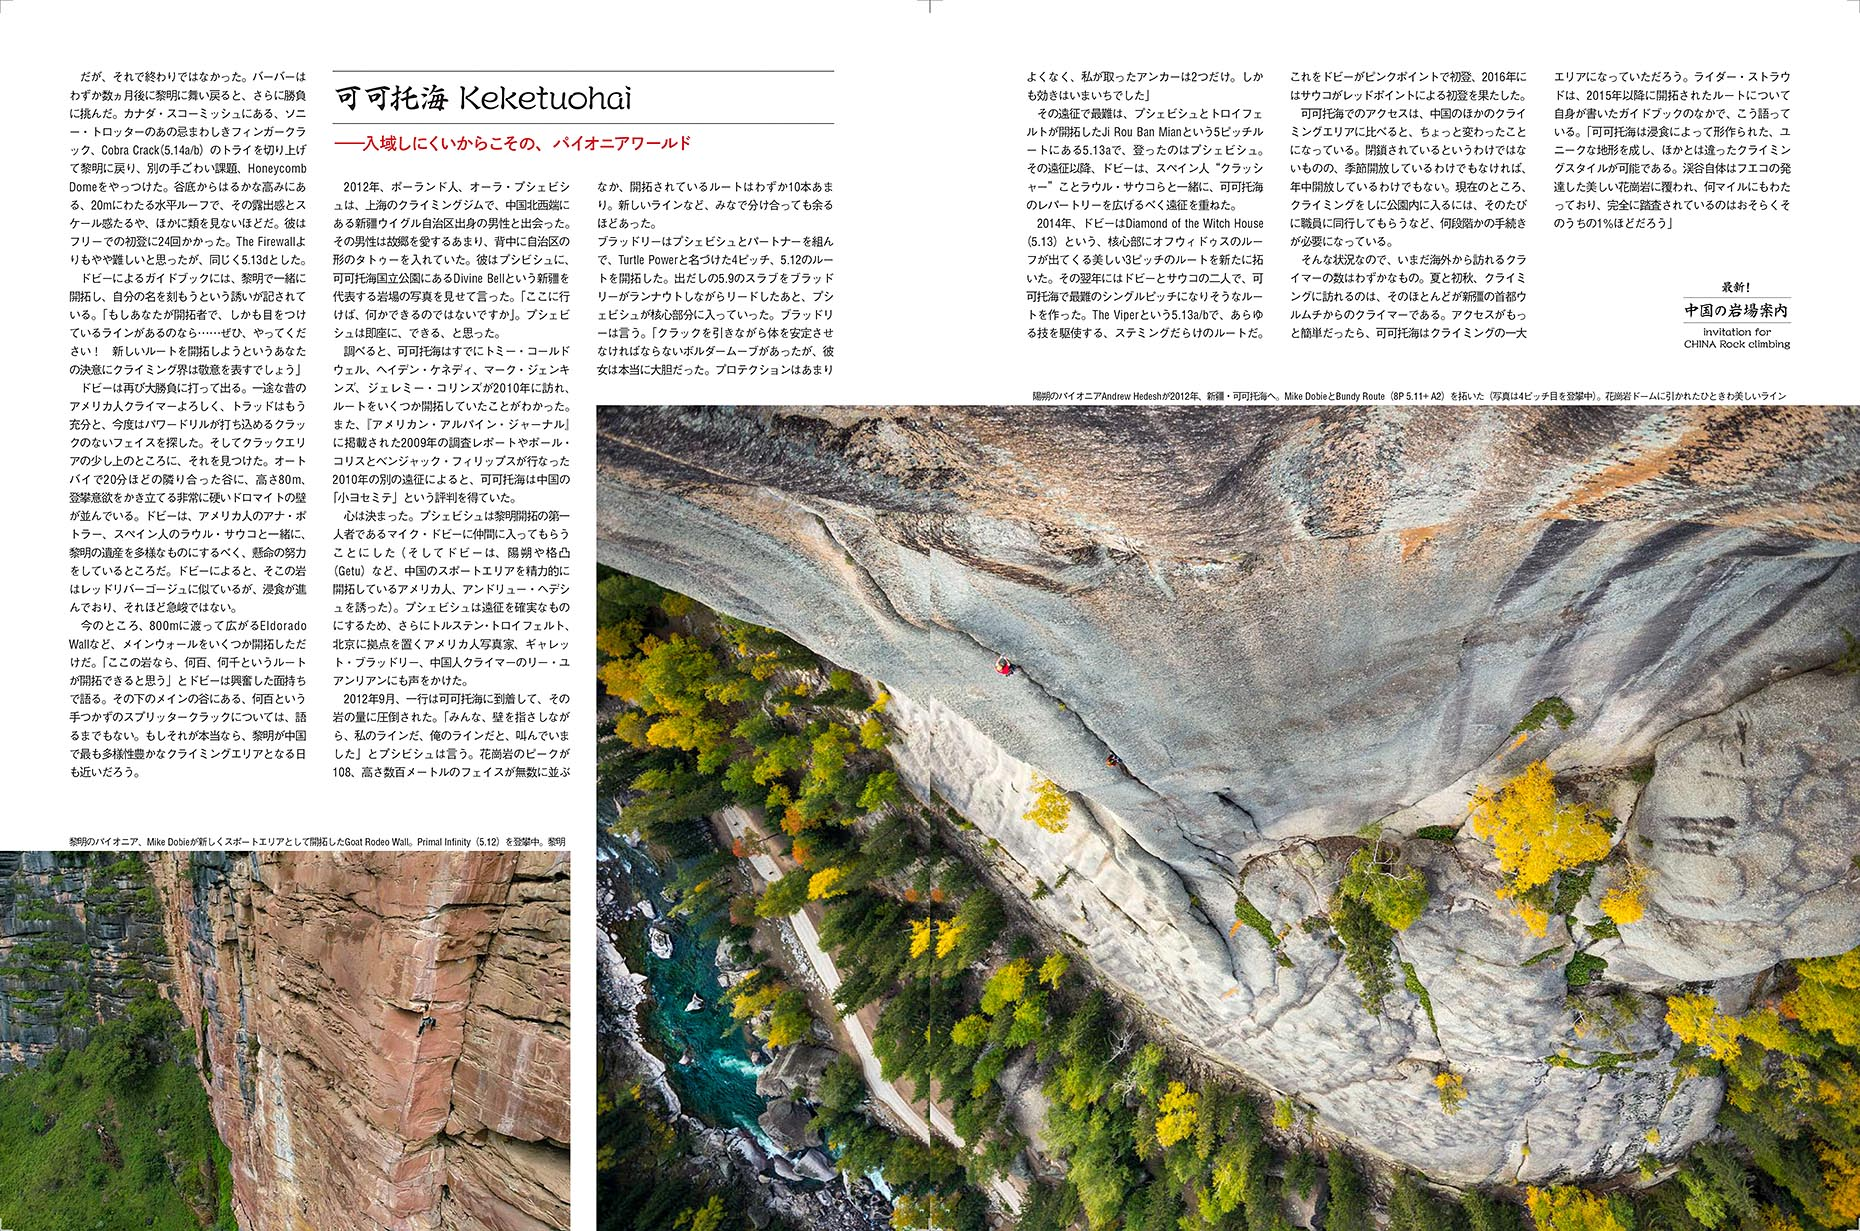 ChinaFeature-RockandSnow_March2019_sm_7-8